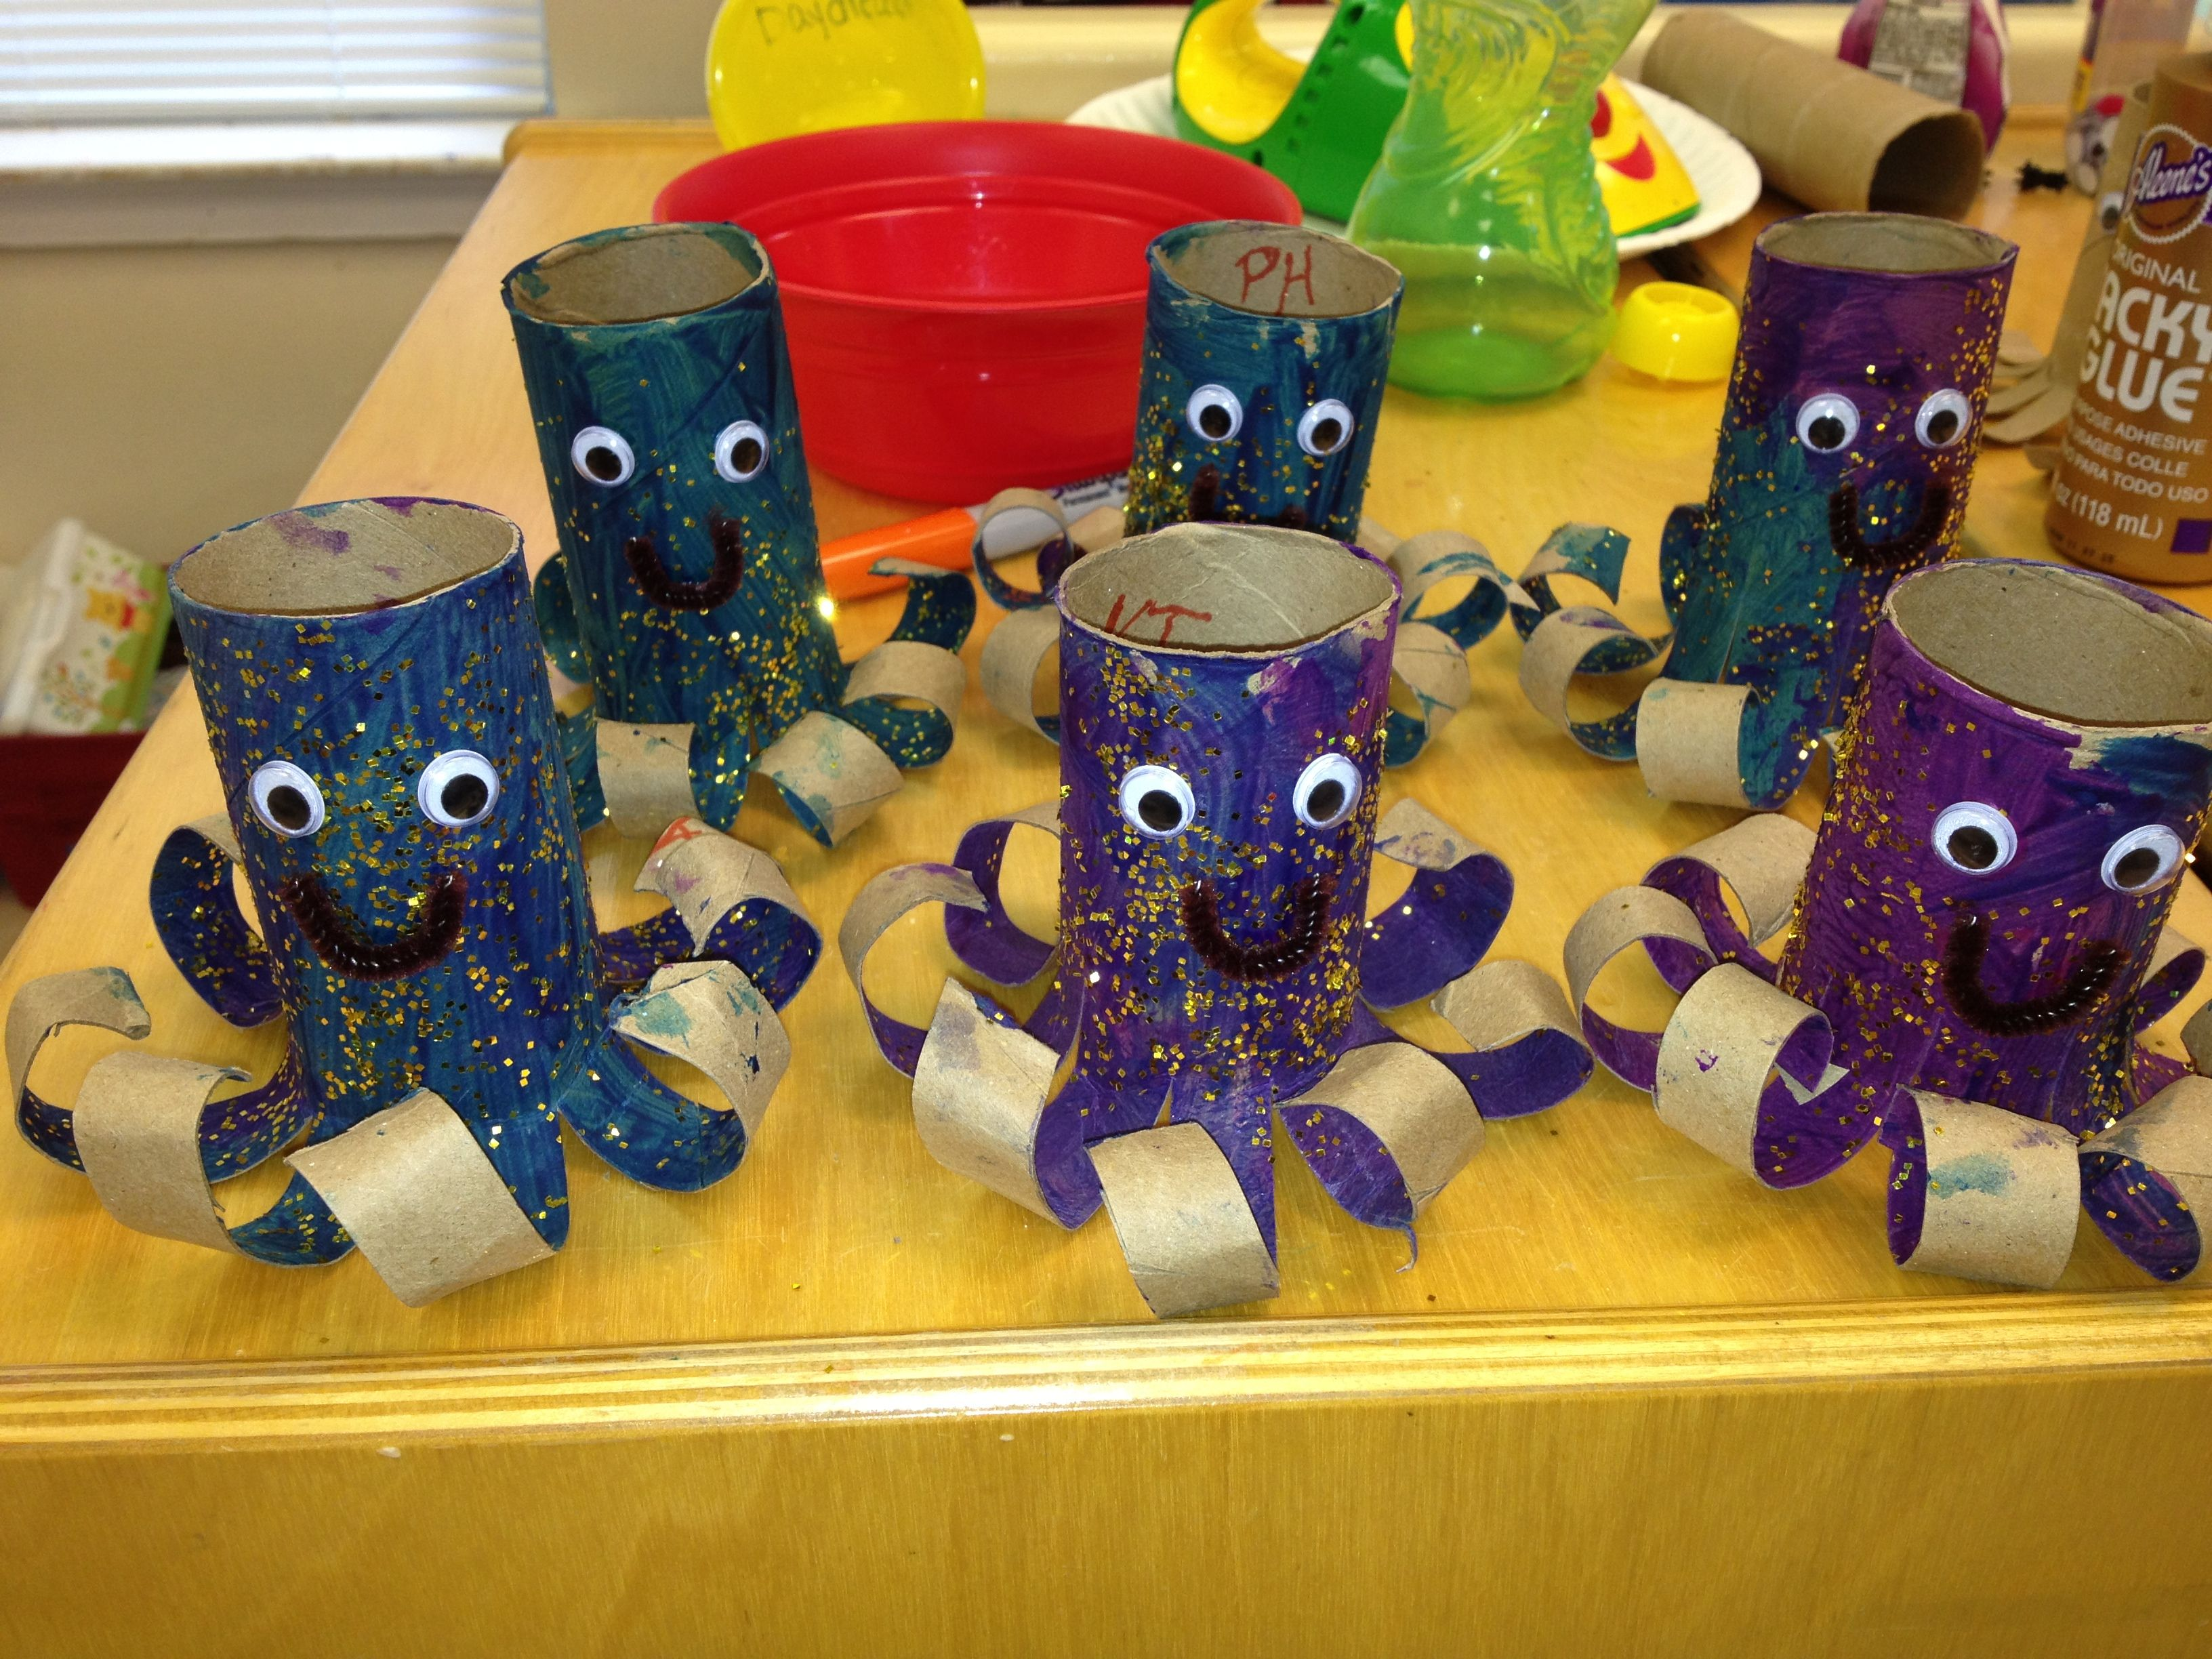 The Octopus My 2 Year Old Class Made